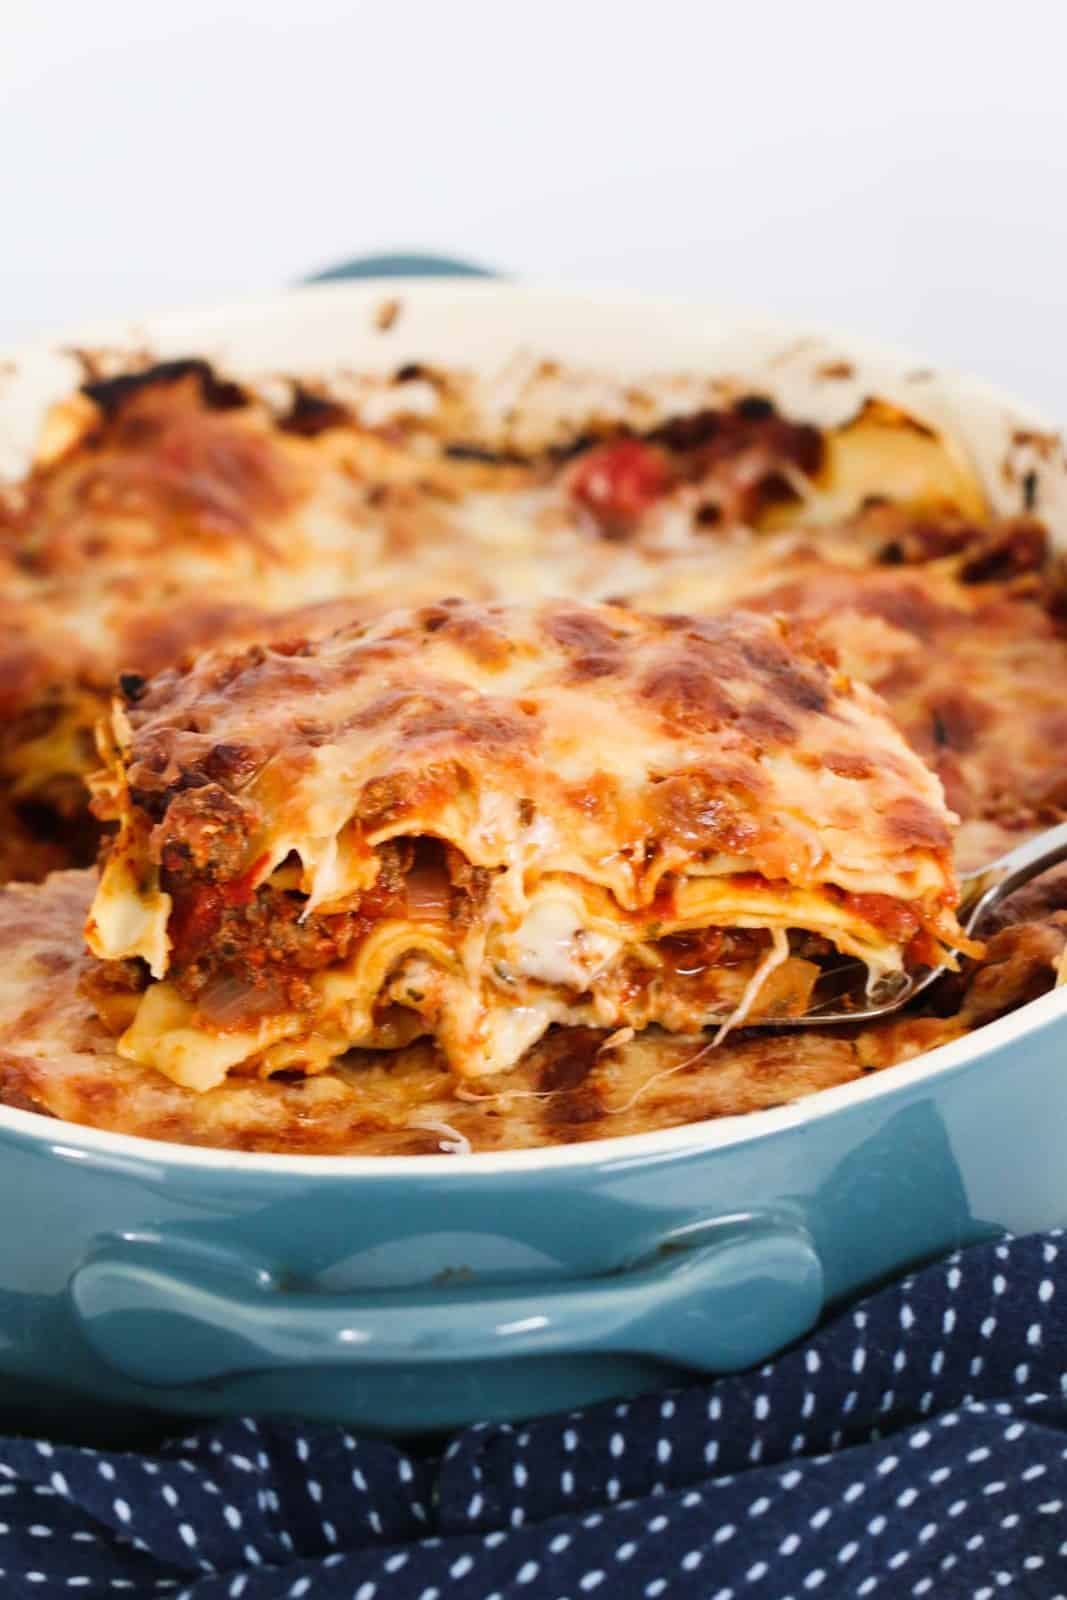 A baking dish of lasagne, with a tea towel wrapped around it, and a large spoon lifting some out of the dish